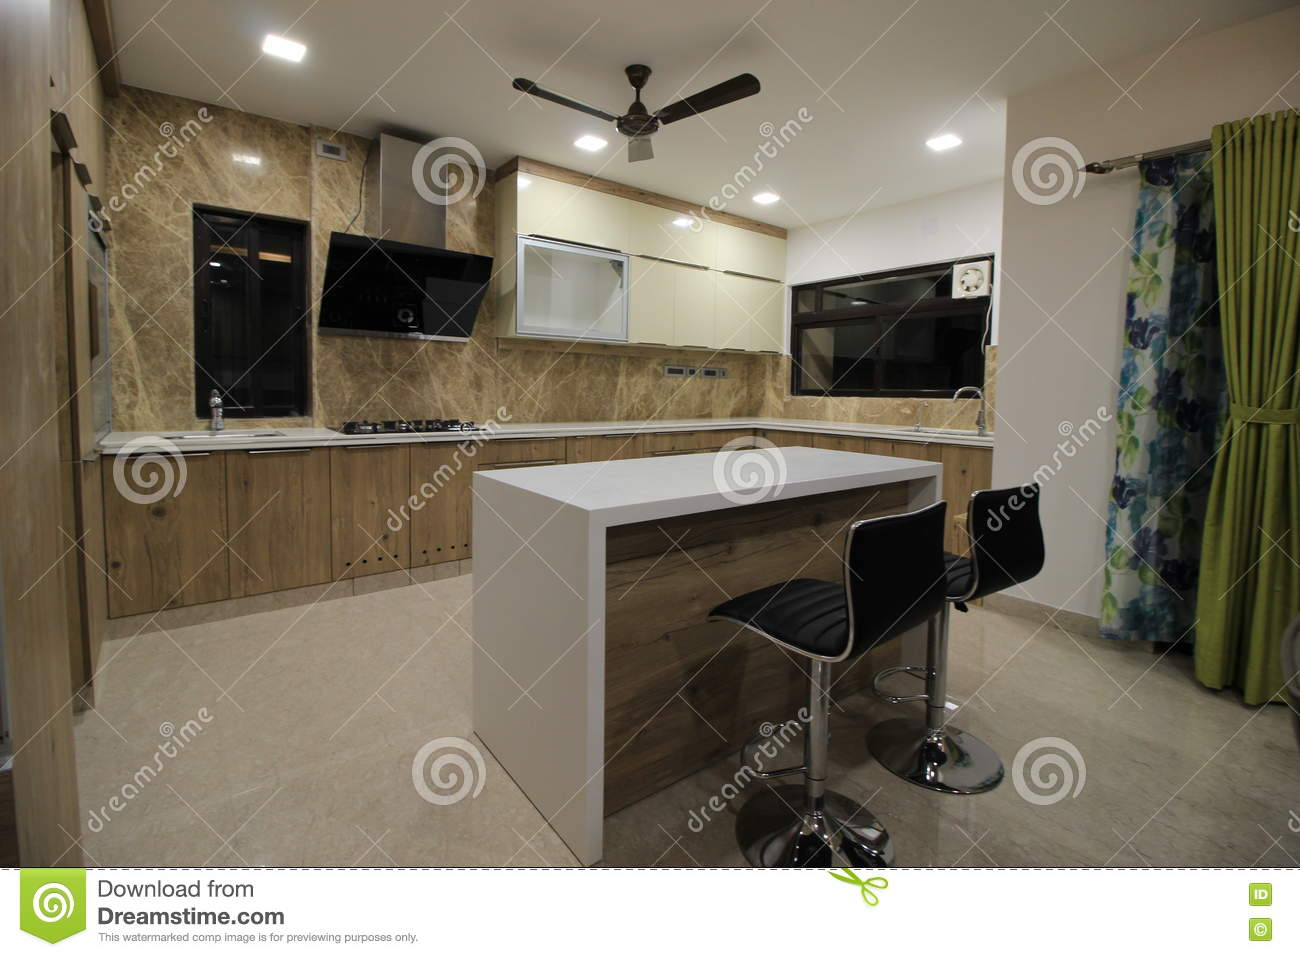 Kitchen Space Stock Image Image Of Texture Appliances 77750231